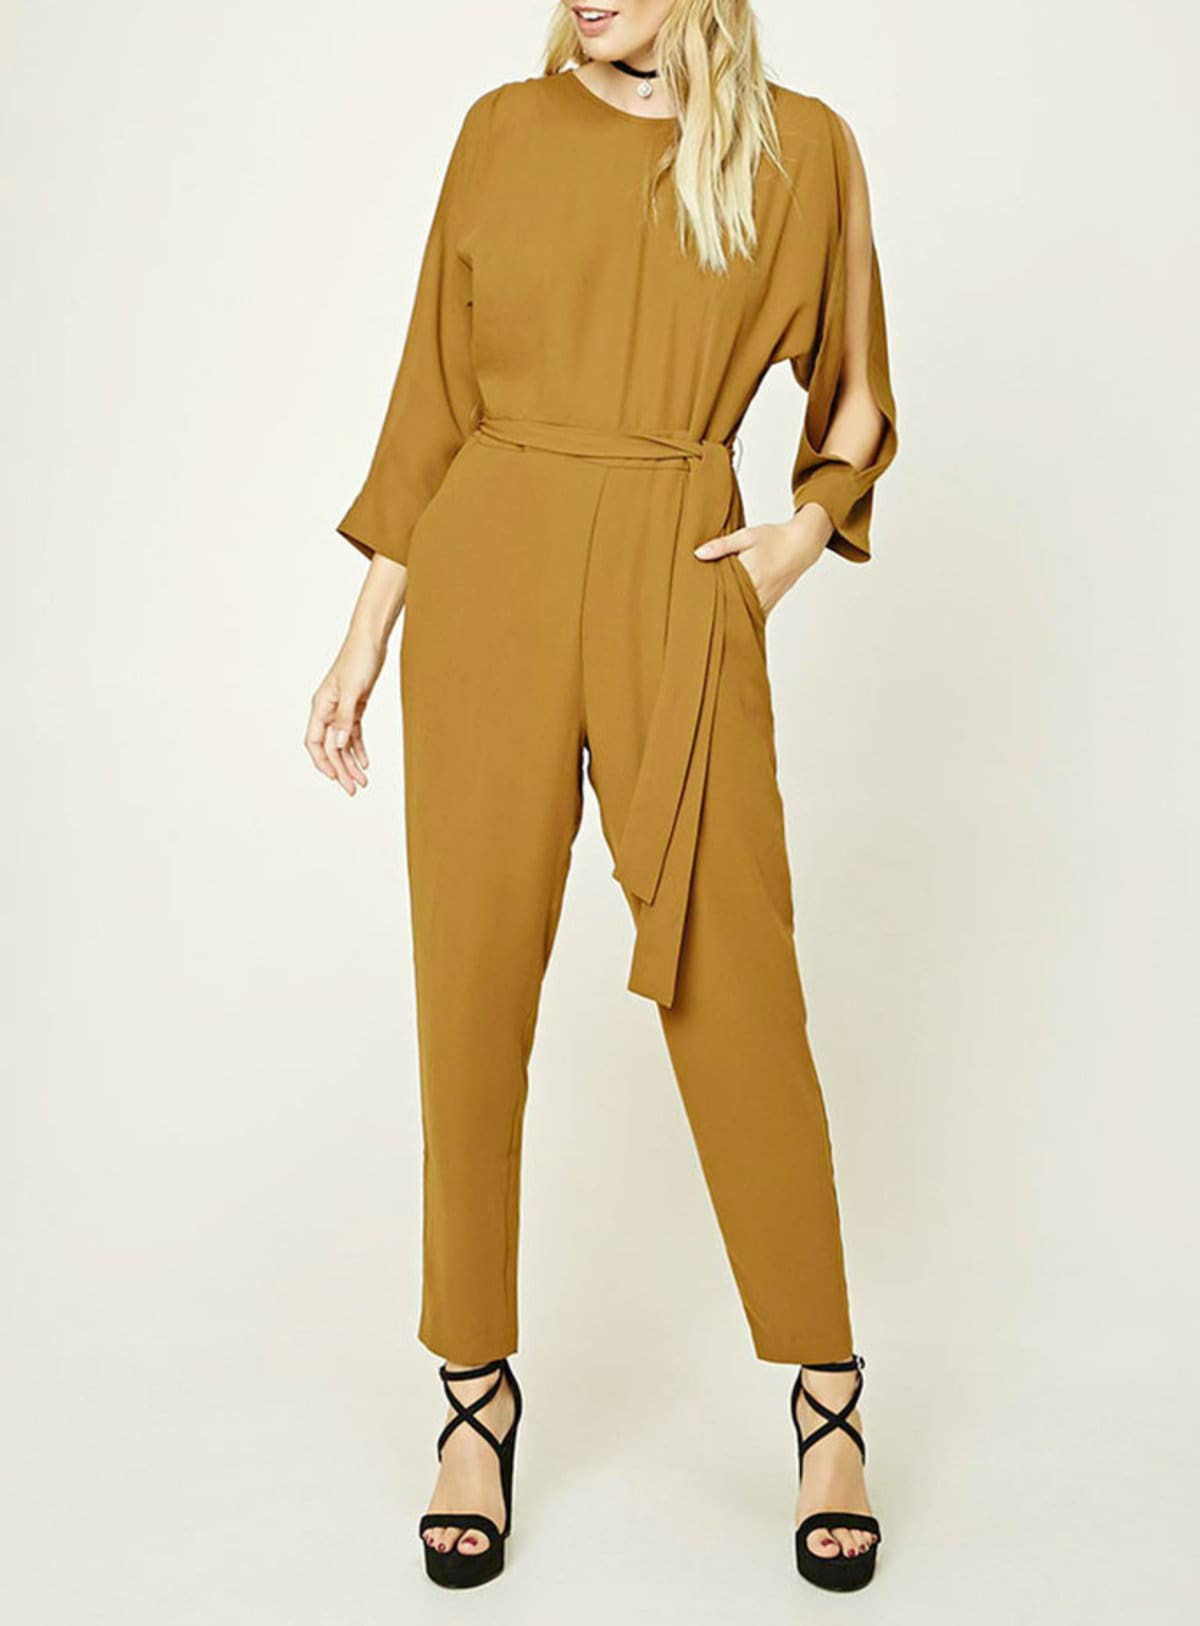 121516-jumpsuits-for-women-3